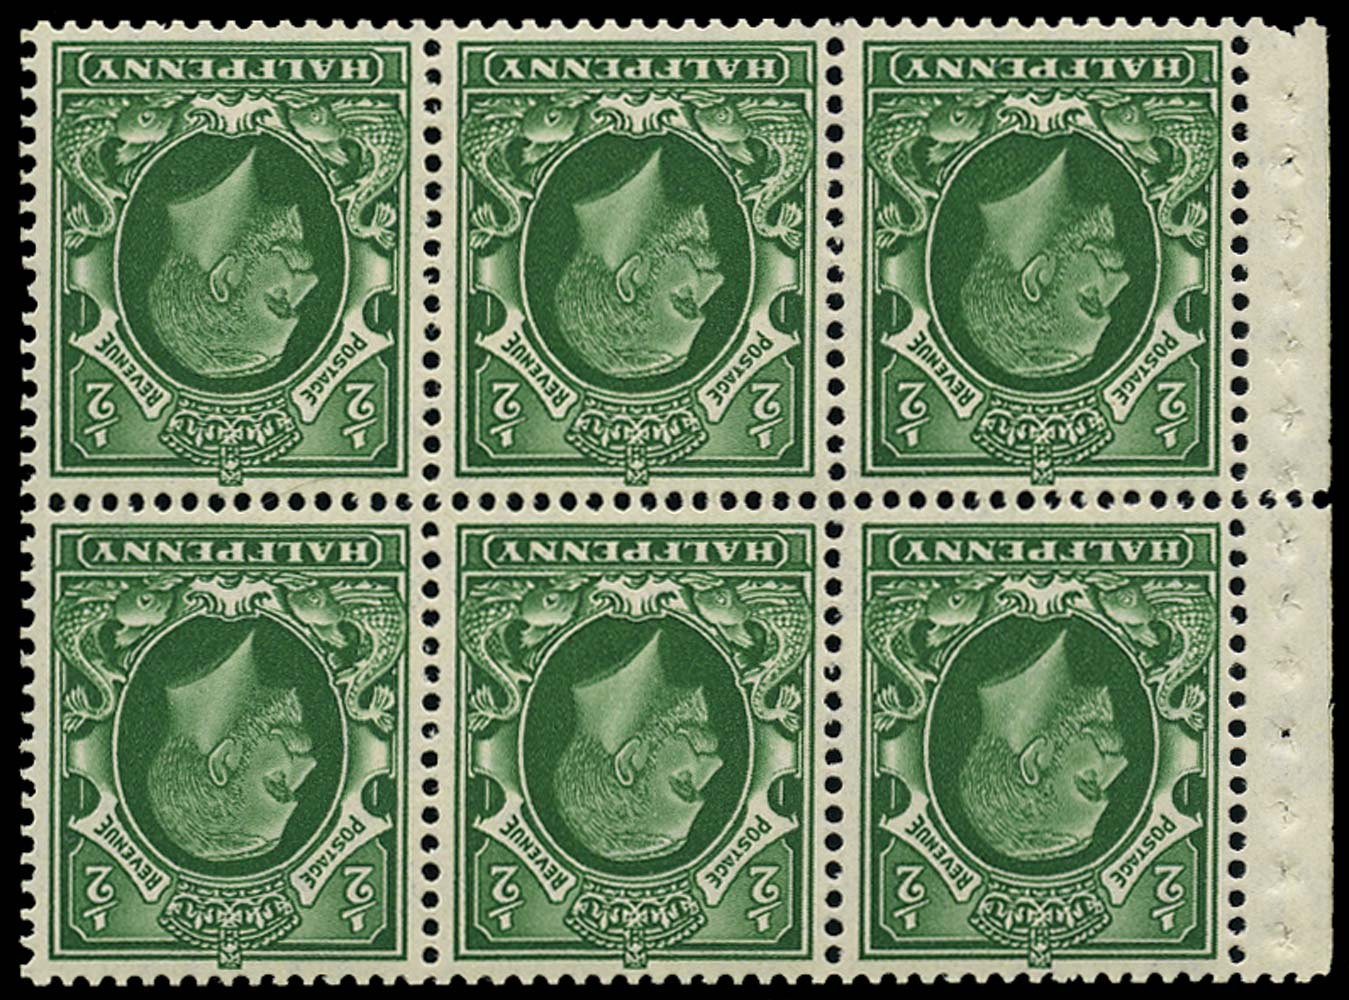 GB 1935  SG439cw Booklet pane (small format) Wmk. Inverted